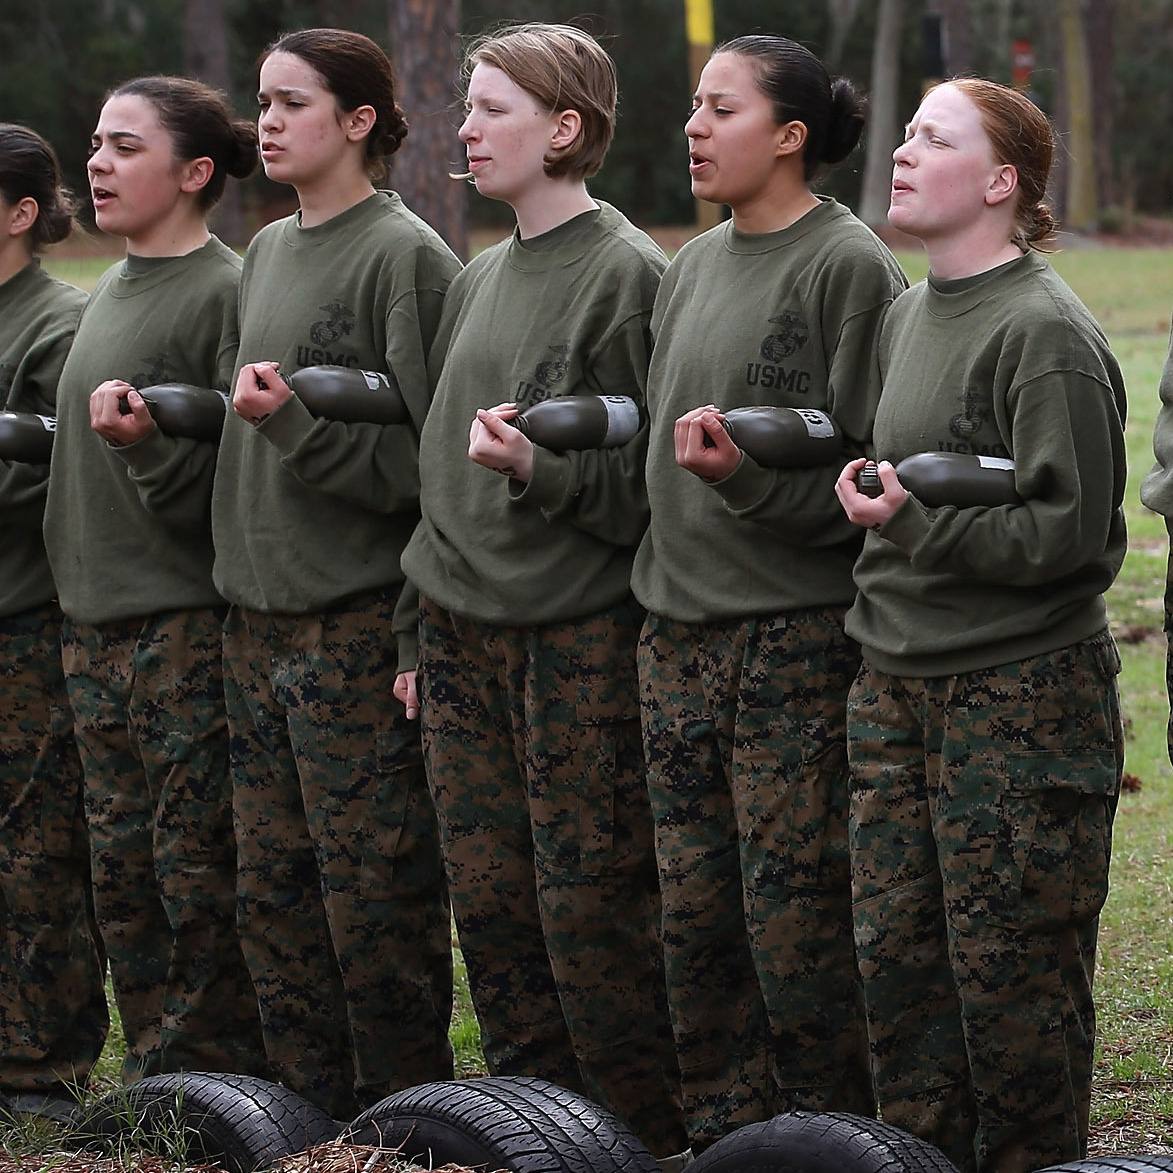 Recruits listen to instructions during boot camp at the Marine Corps Recruit Depot on Parris Island, S.C., on Feb. 27.